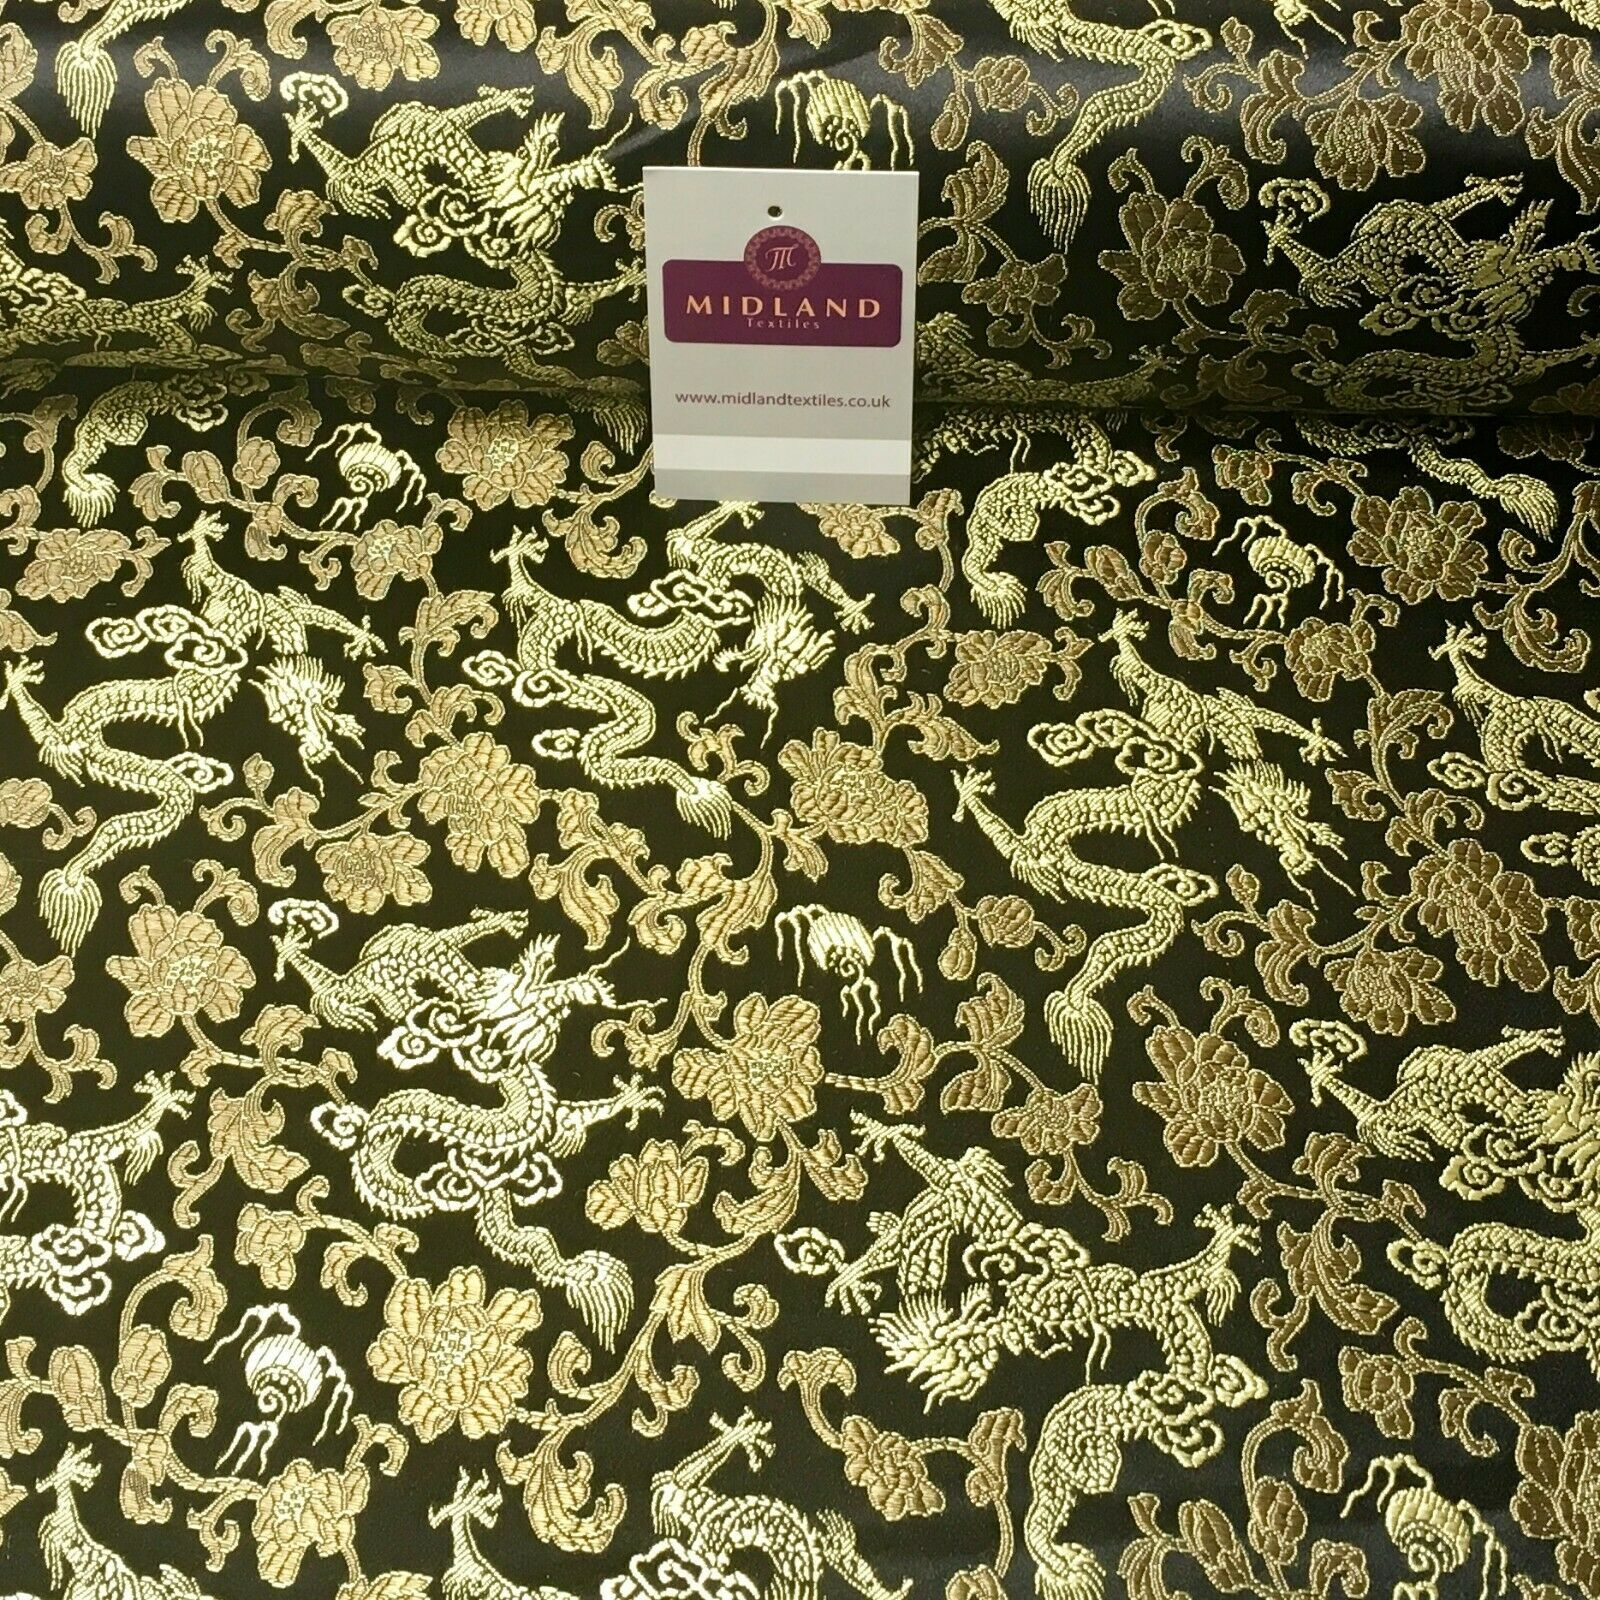 Chinese oriental Dragon Shanghai Brocade dress fabric 120 Cm wide MK1045 Mtex